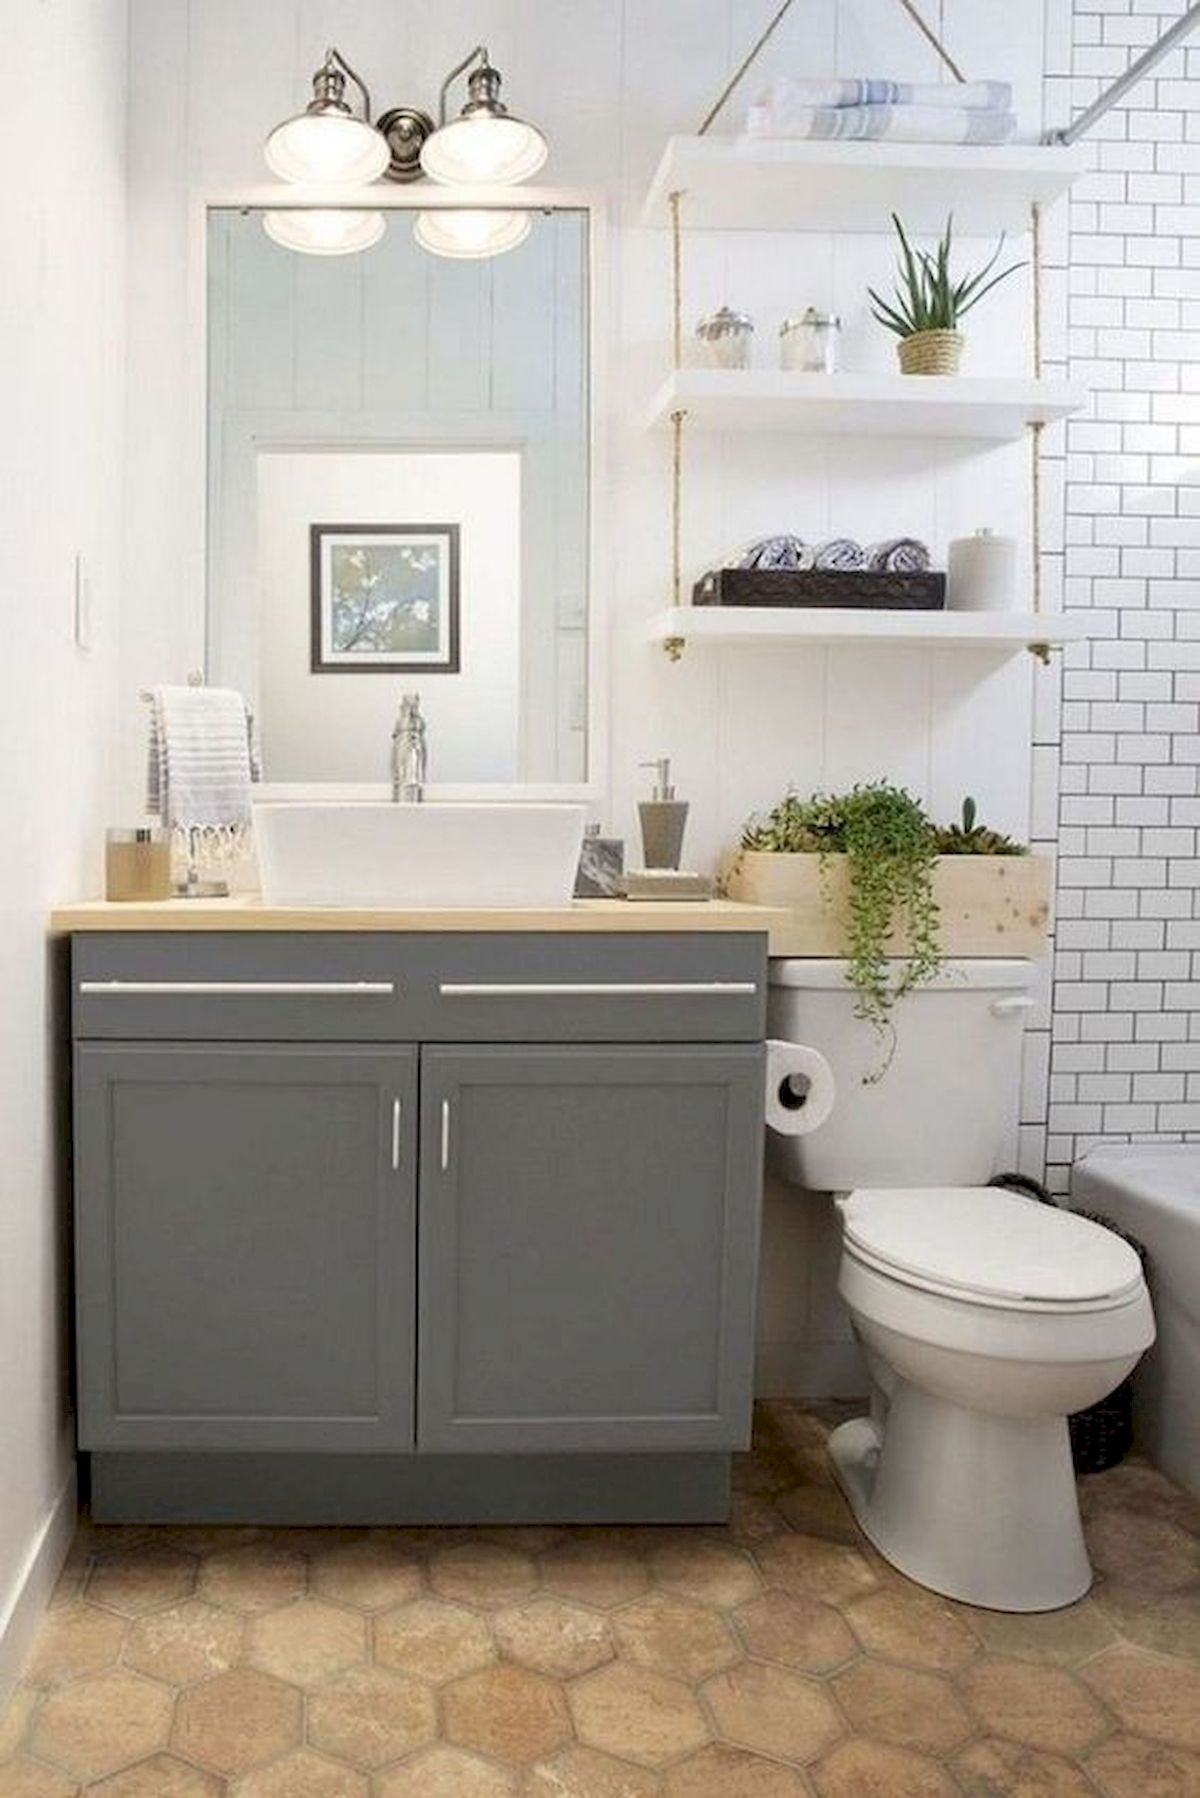 50 Best DIY Storage Design Ideas To Maximize Your Small Bathroom Space (34)